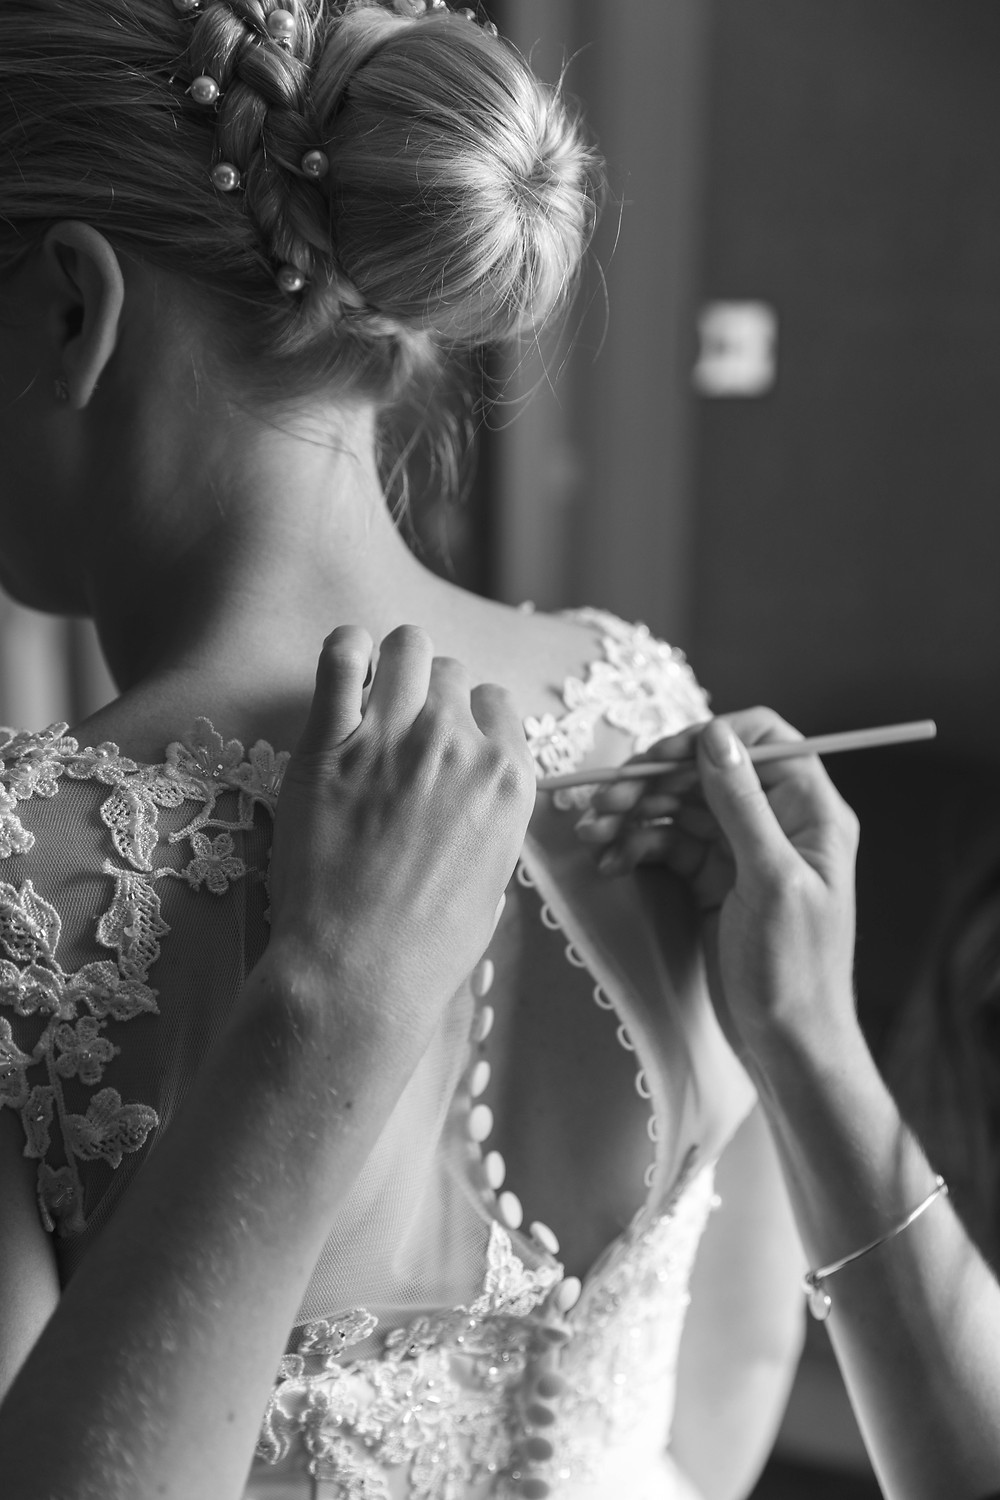 The Bride putting on her wedding dress